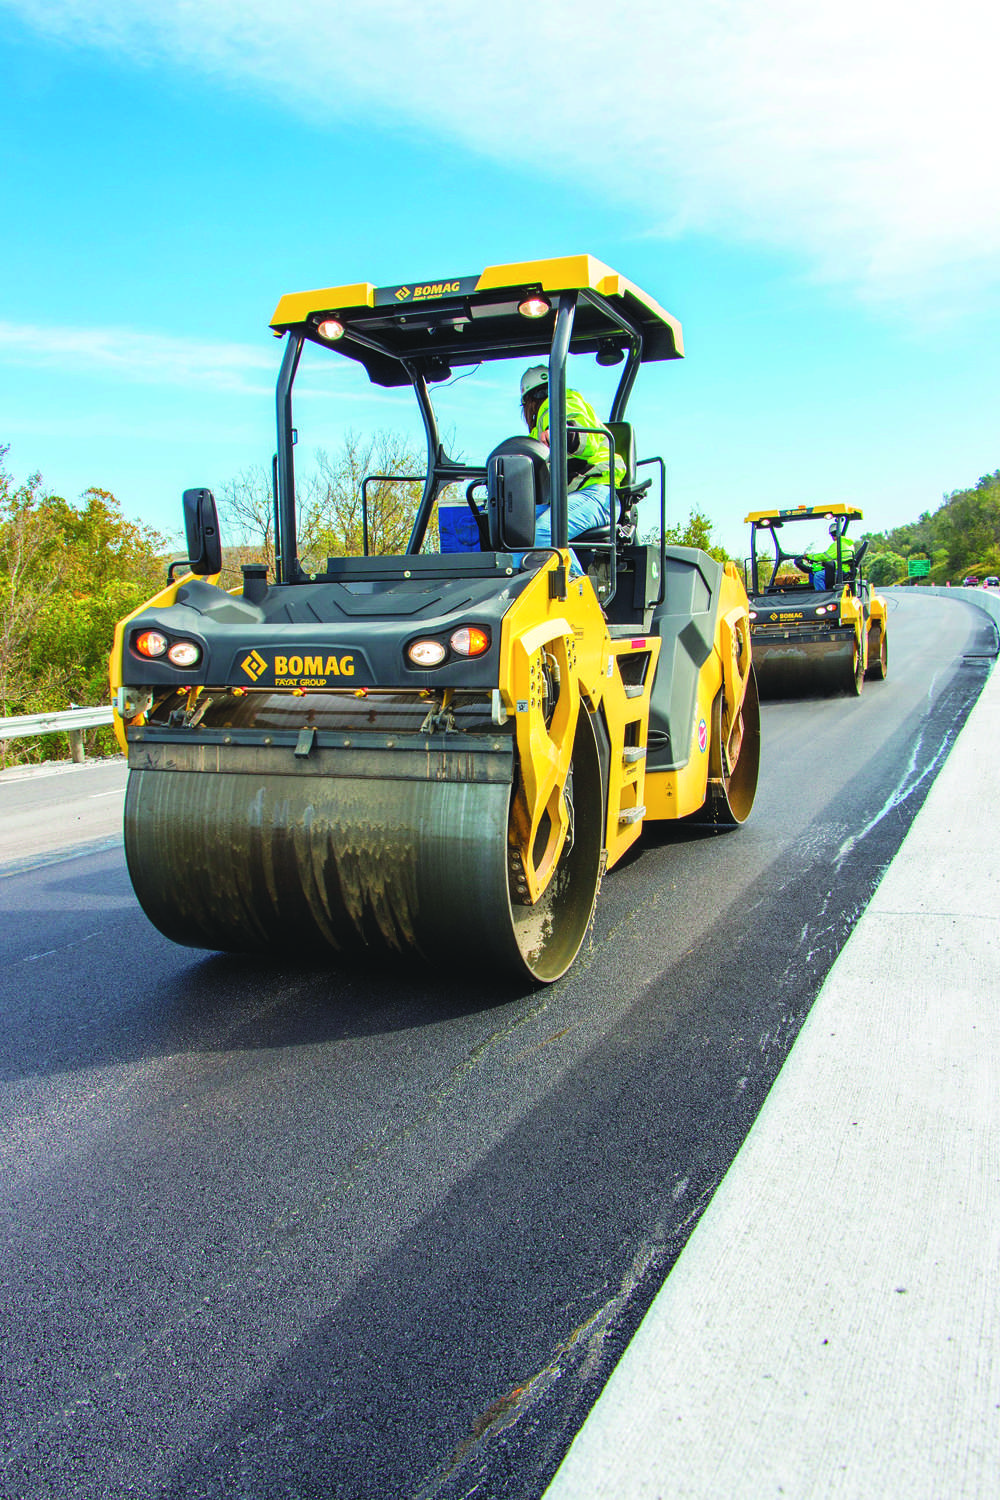 Bomag offers three different vibration technologies — vertical, TanGO and Asphalt Manager — throughout the asphalt roller line.